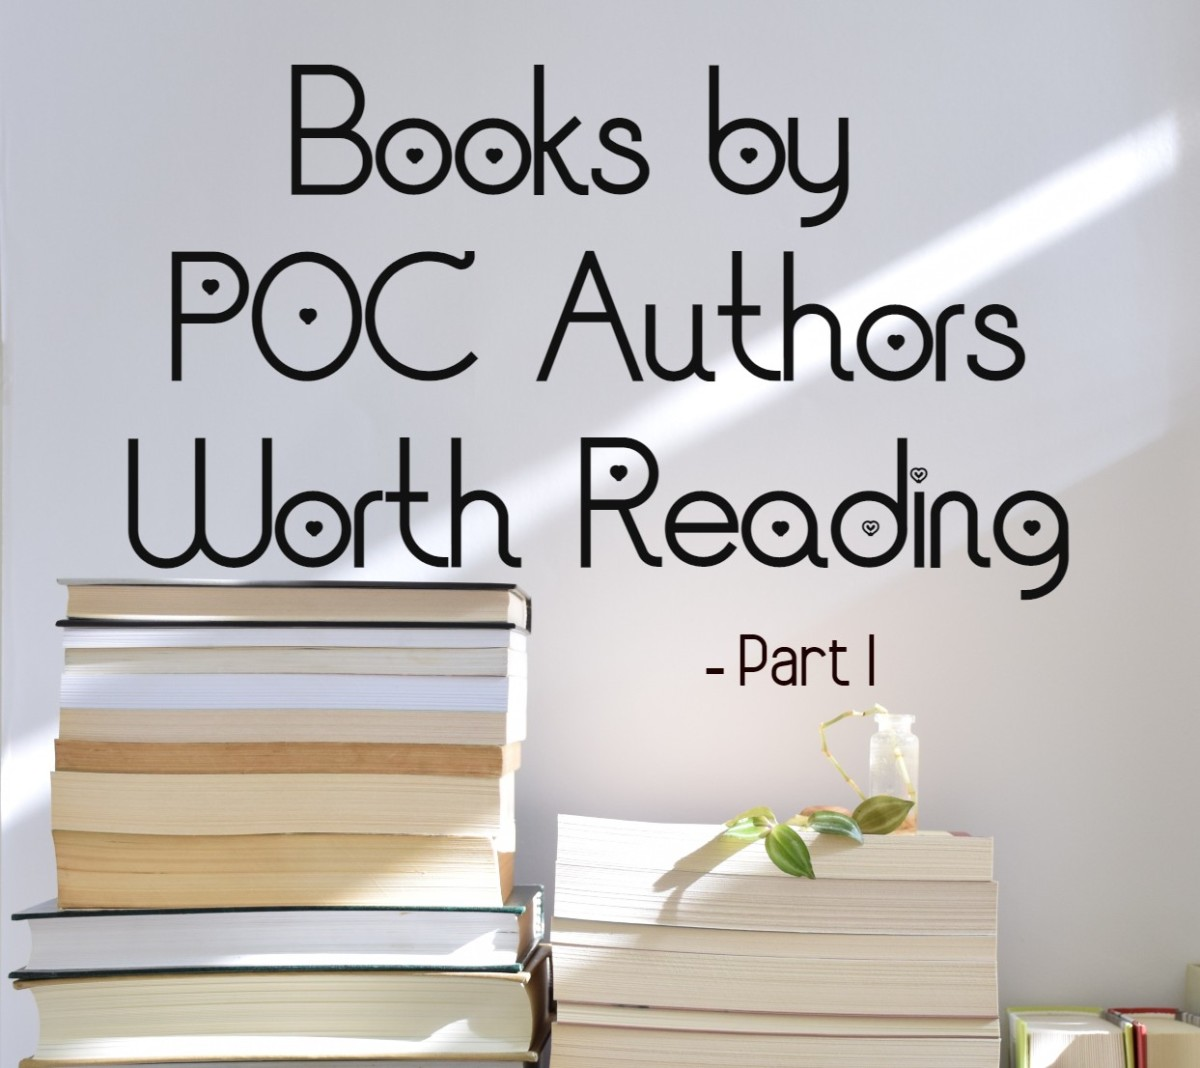 Time to diversify your reading lists!